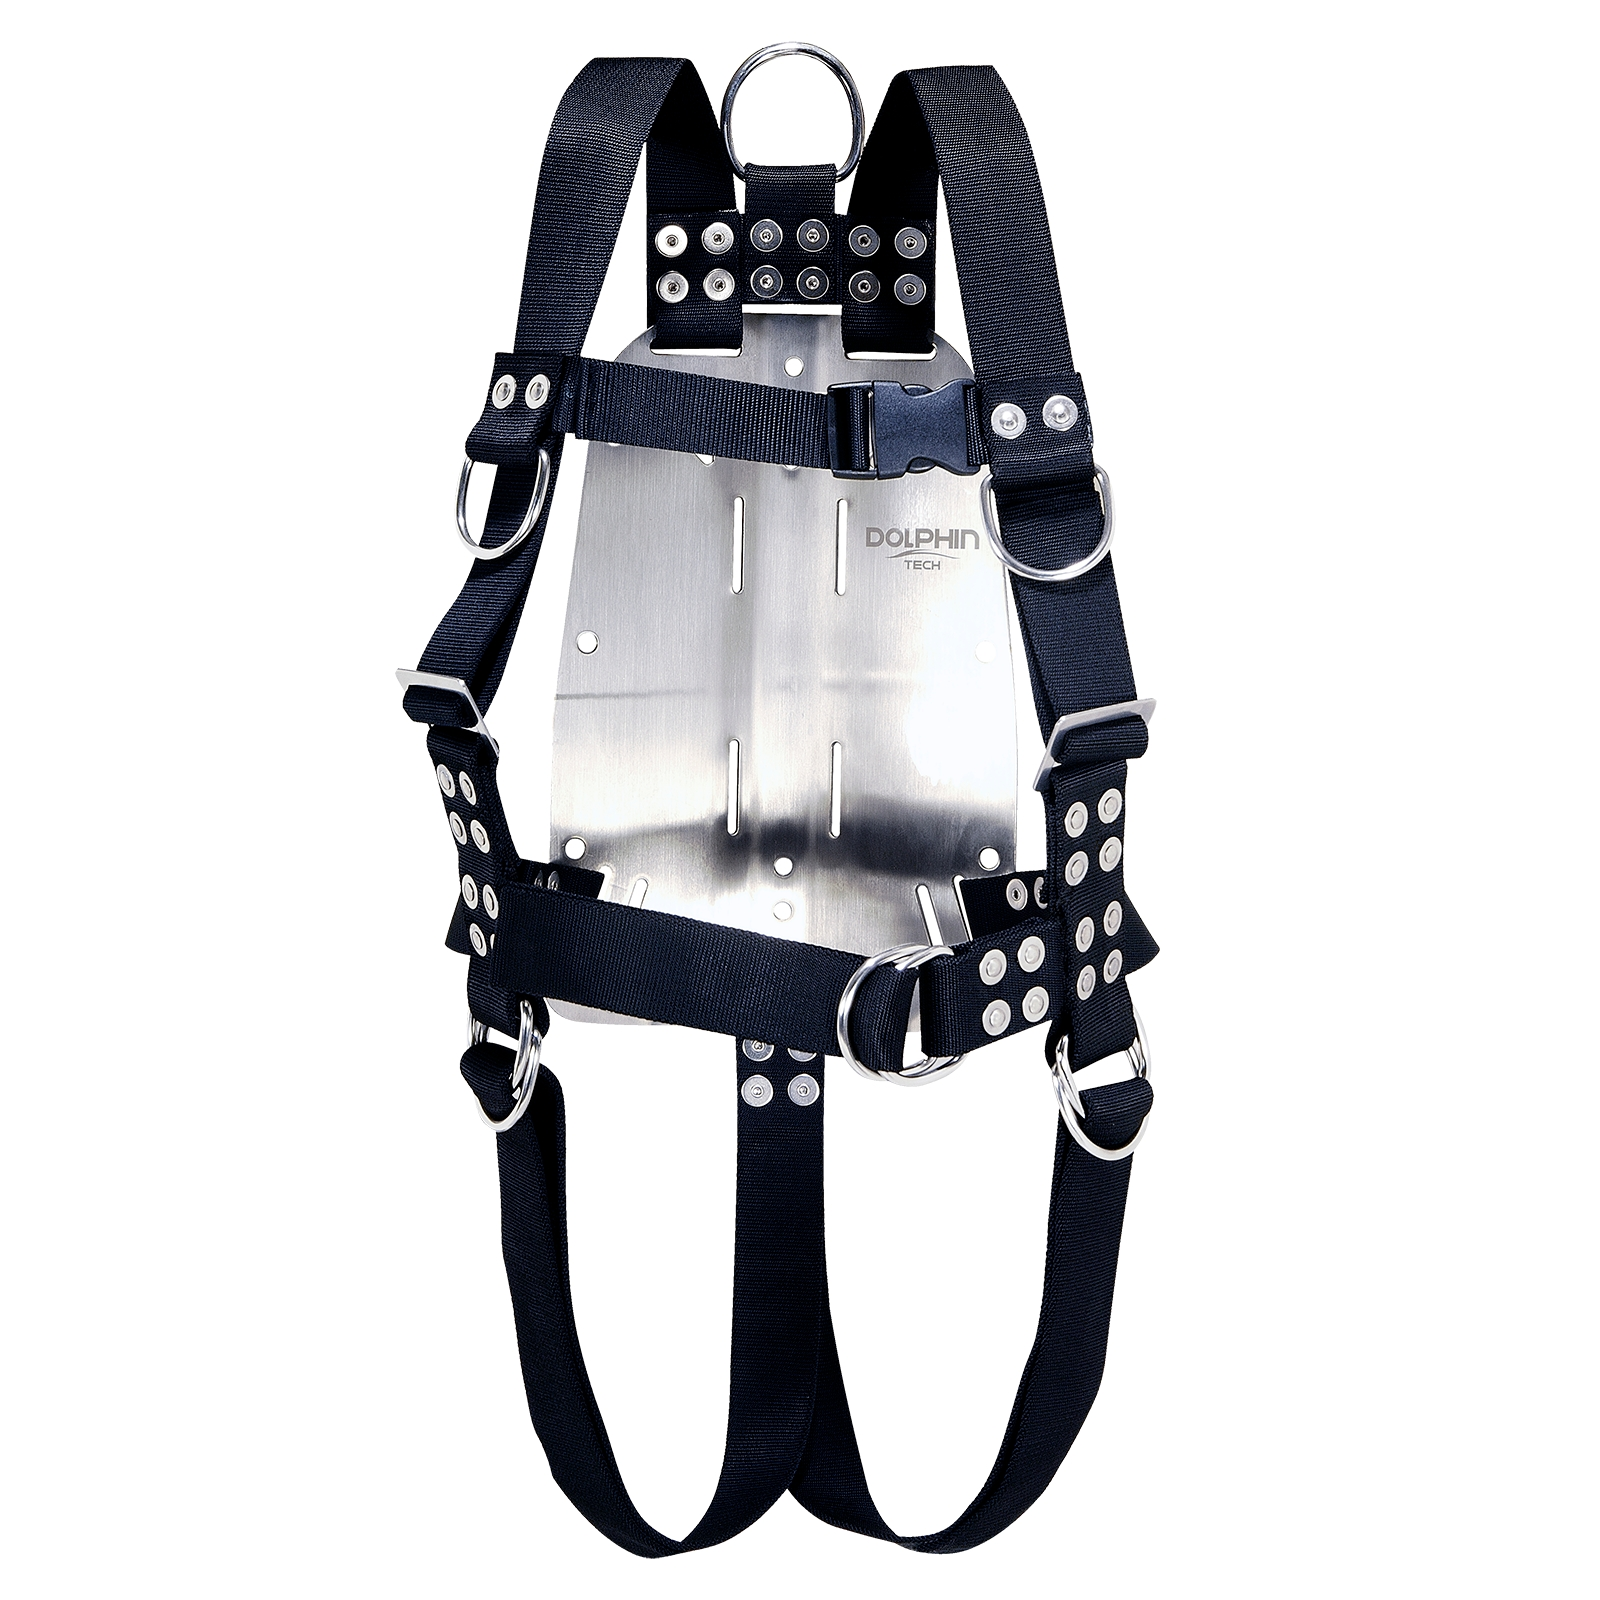 Commercial diving bell harness